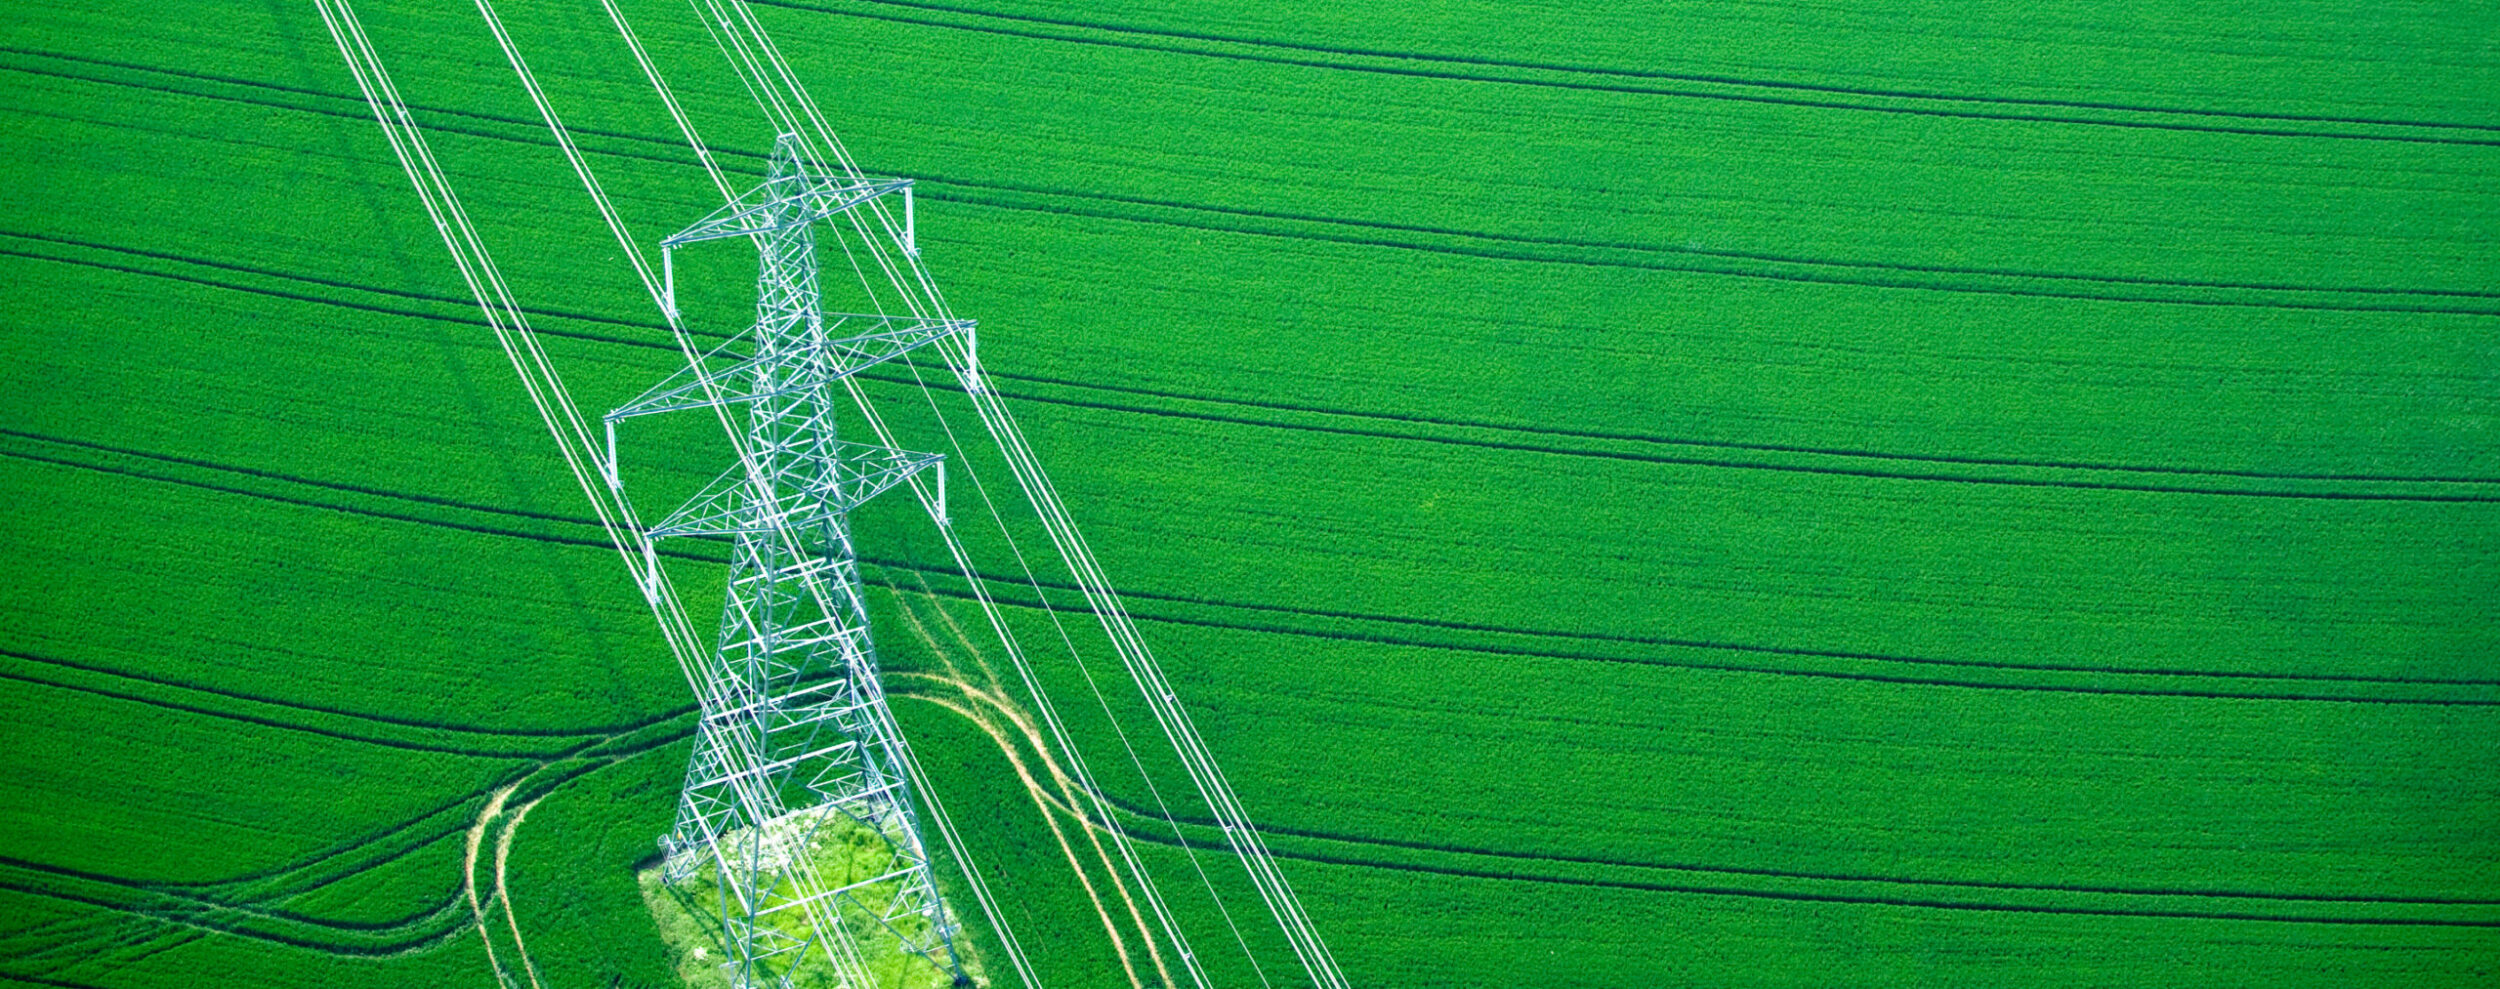 Aerial view of electricity pylons supplying power